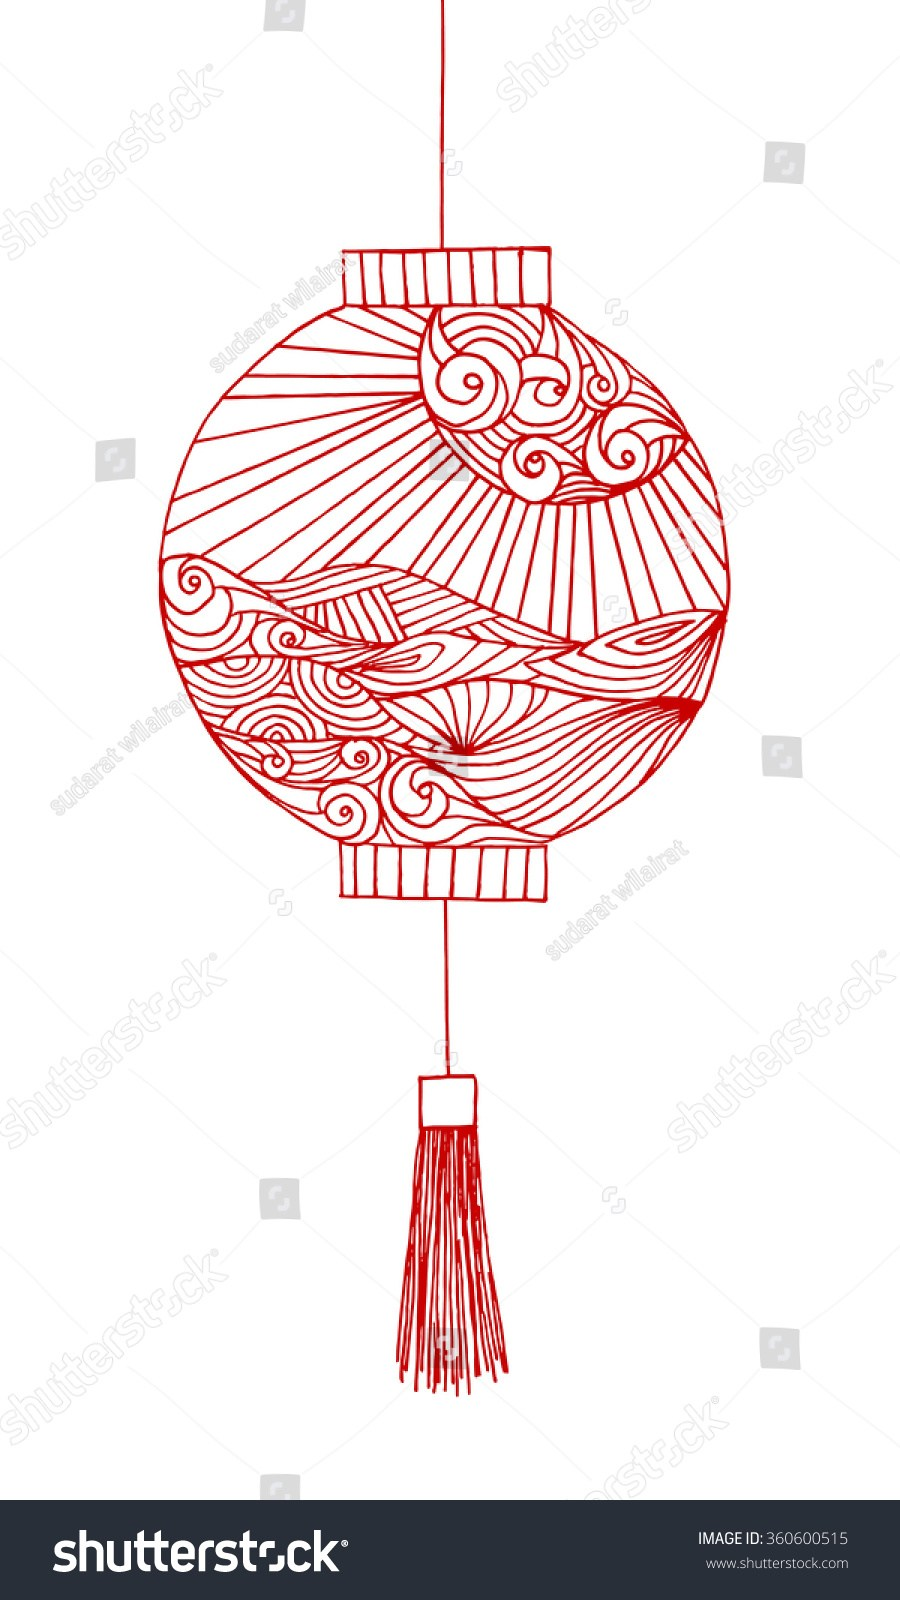 900x1600 Hand Drawing Chinese Lantern Japanese Lantern Stock Illustration